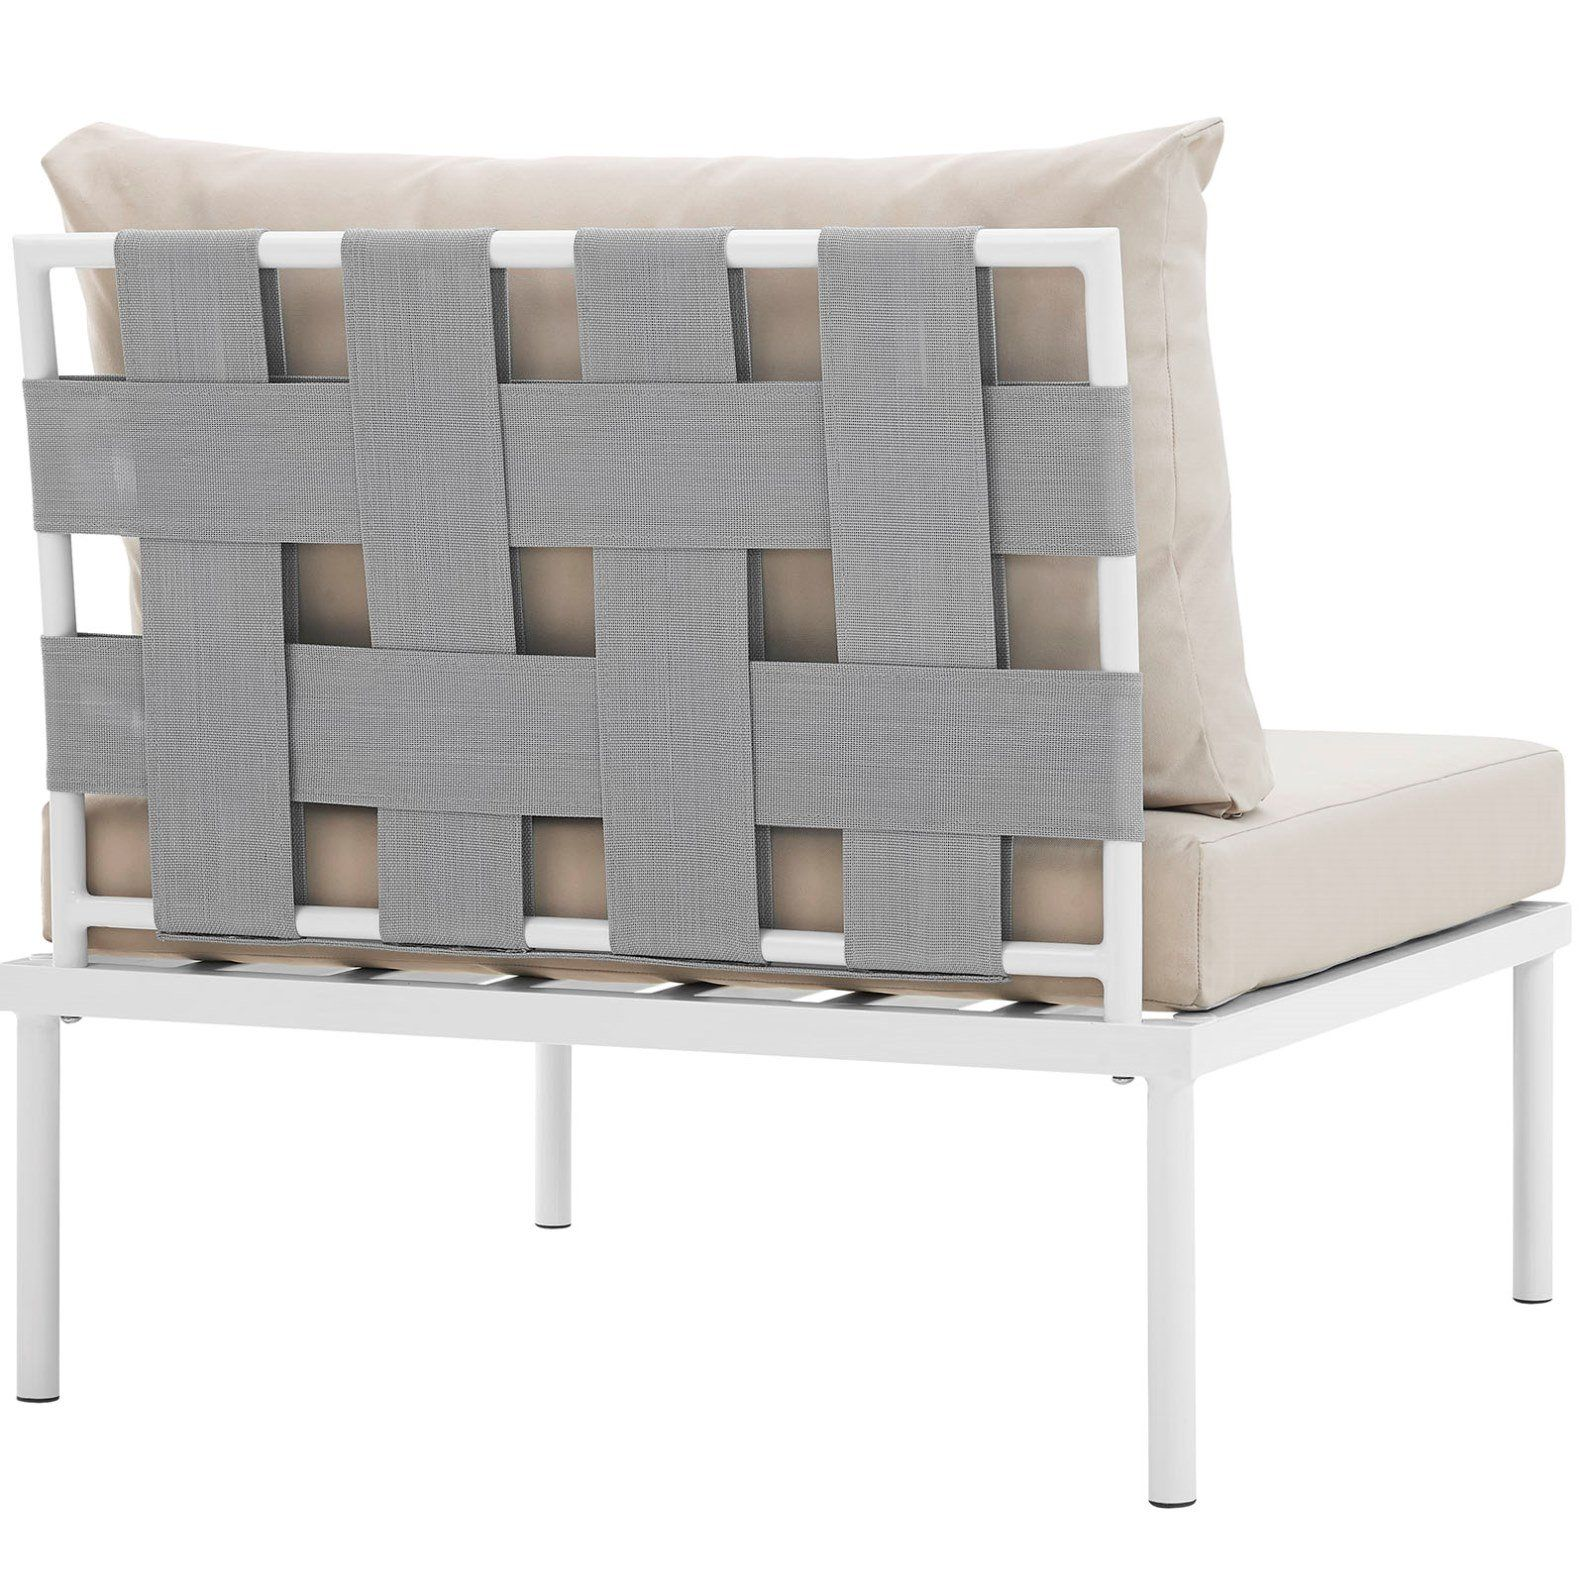 Modern Contemporary Urban Design Outdoor Patio Balcony Lounge Chair Beige White Rattan Visit The Image Link More Deta Modern Furniture Sets Tufted Dining Chairs Furniture